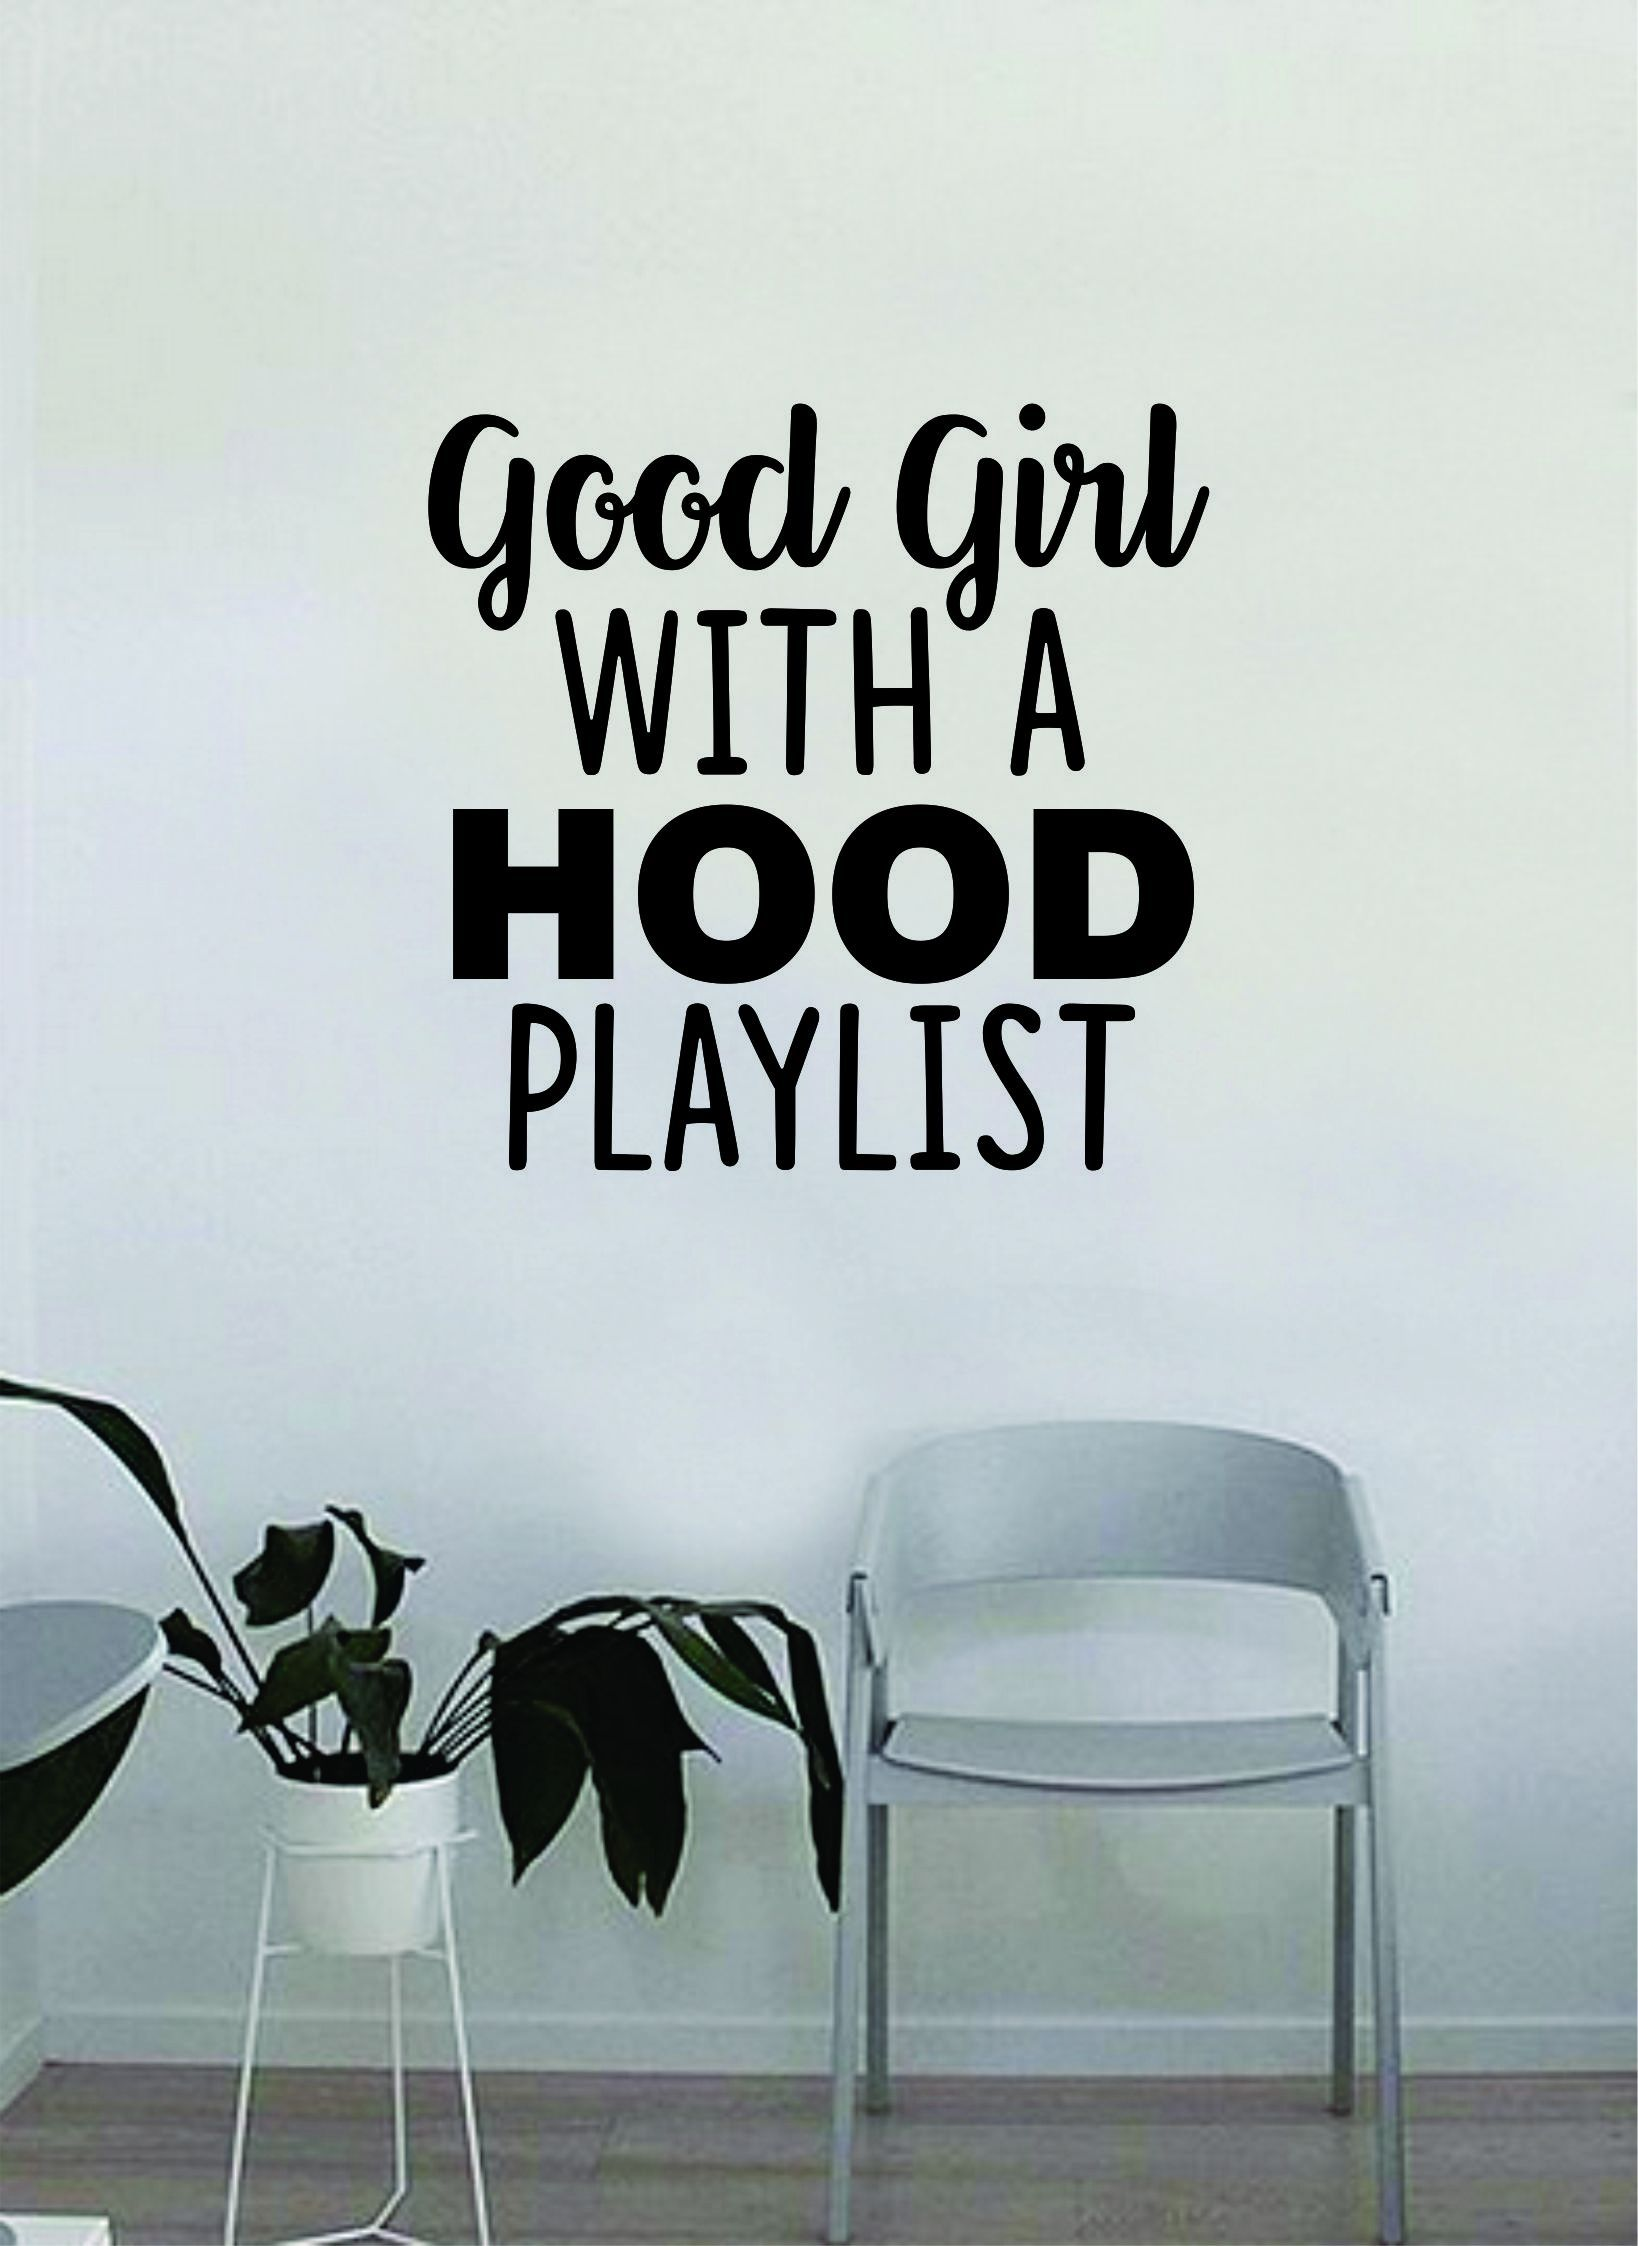 Photo of Good Girl with a Hood Playlist Quote Wall Decal Sticker Bedroom Home Room Art Vinyl Inspirational Decor Funny Teen Music Girls Women Female – vivid blue